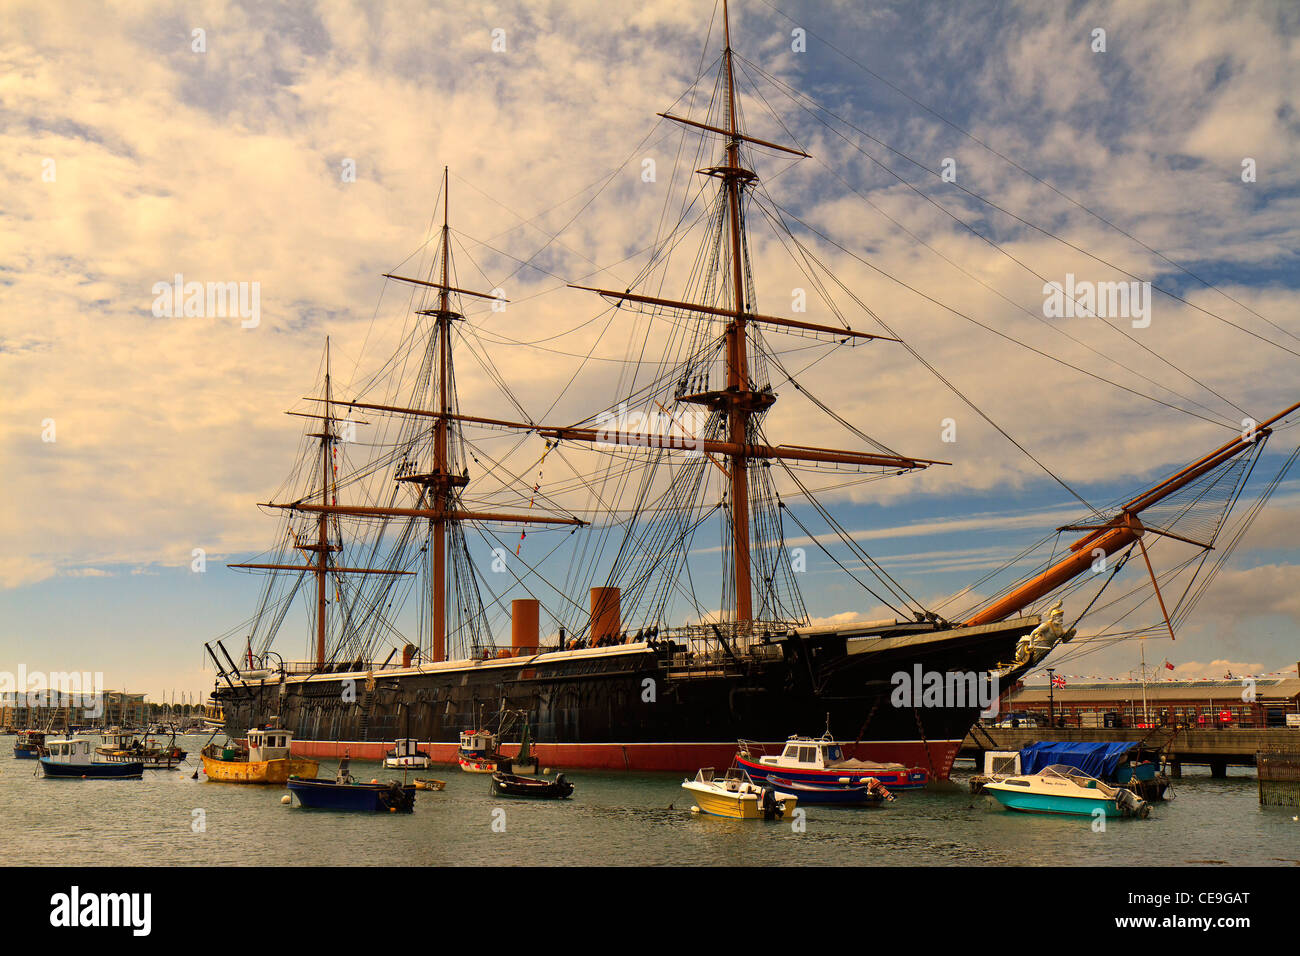 UK Hampshire HMS Warrior - Stock Image